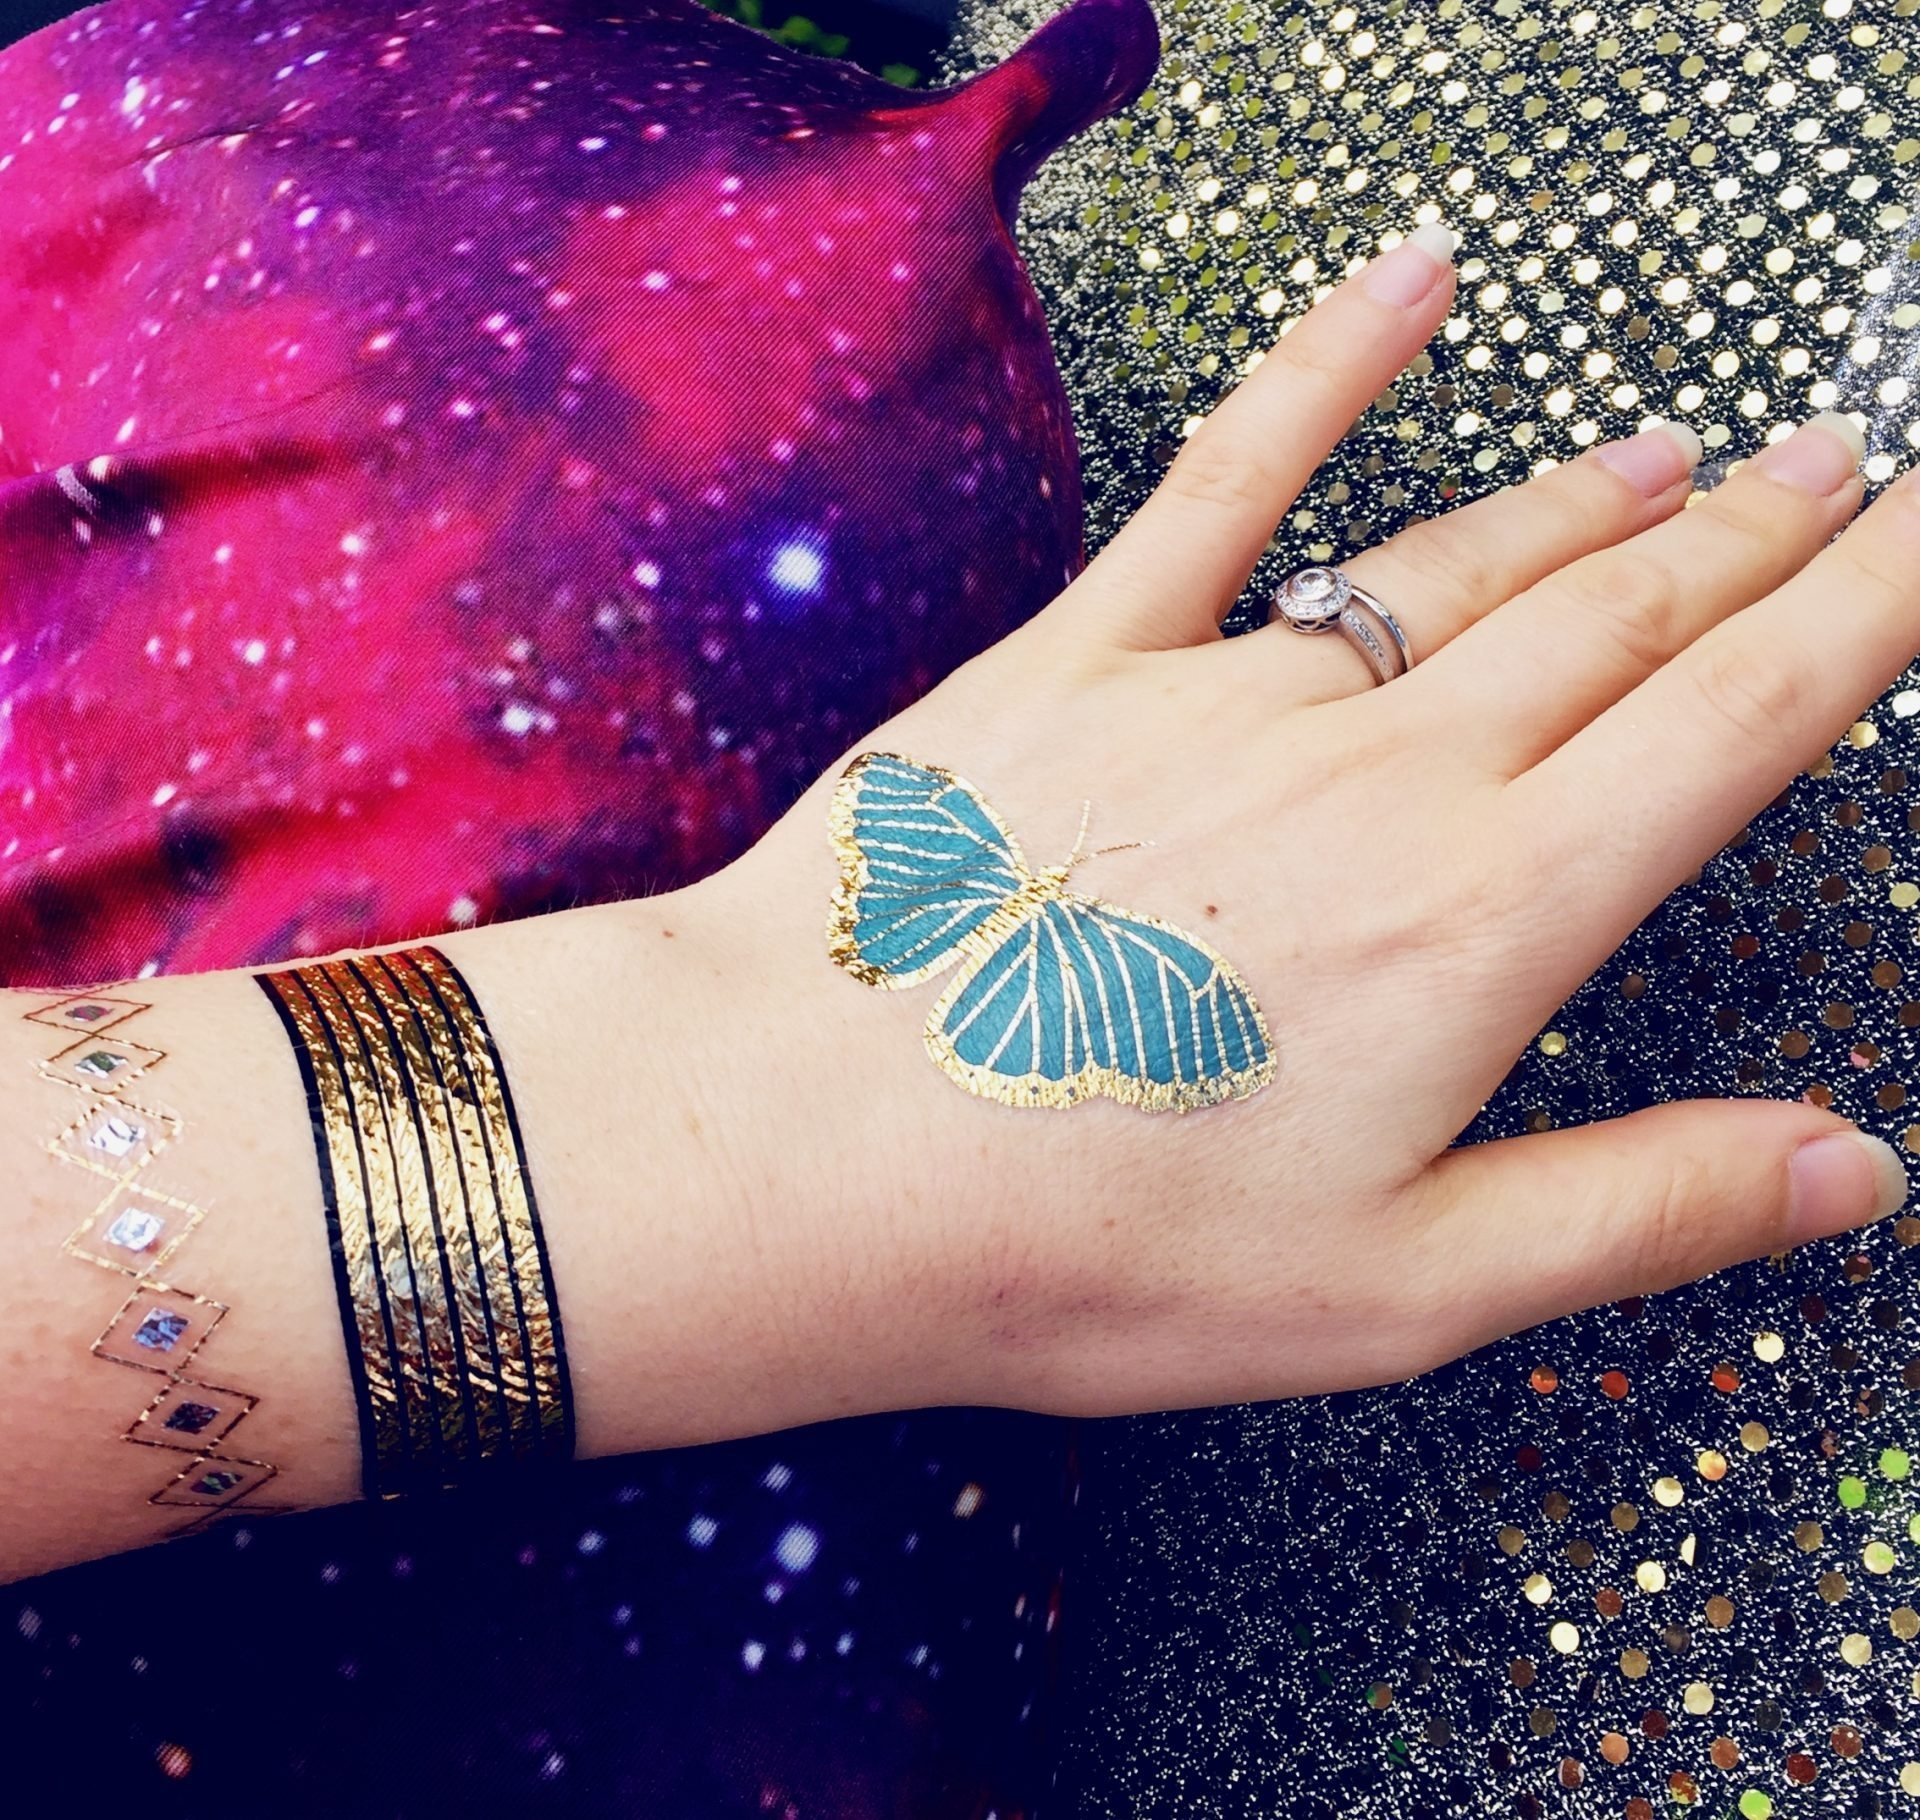 Is It Possible To Get A Temporary Ink Tattoo One That Only Lasts